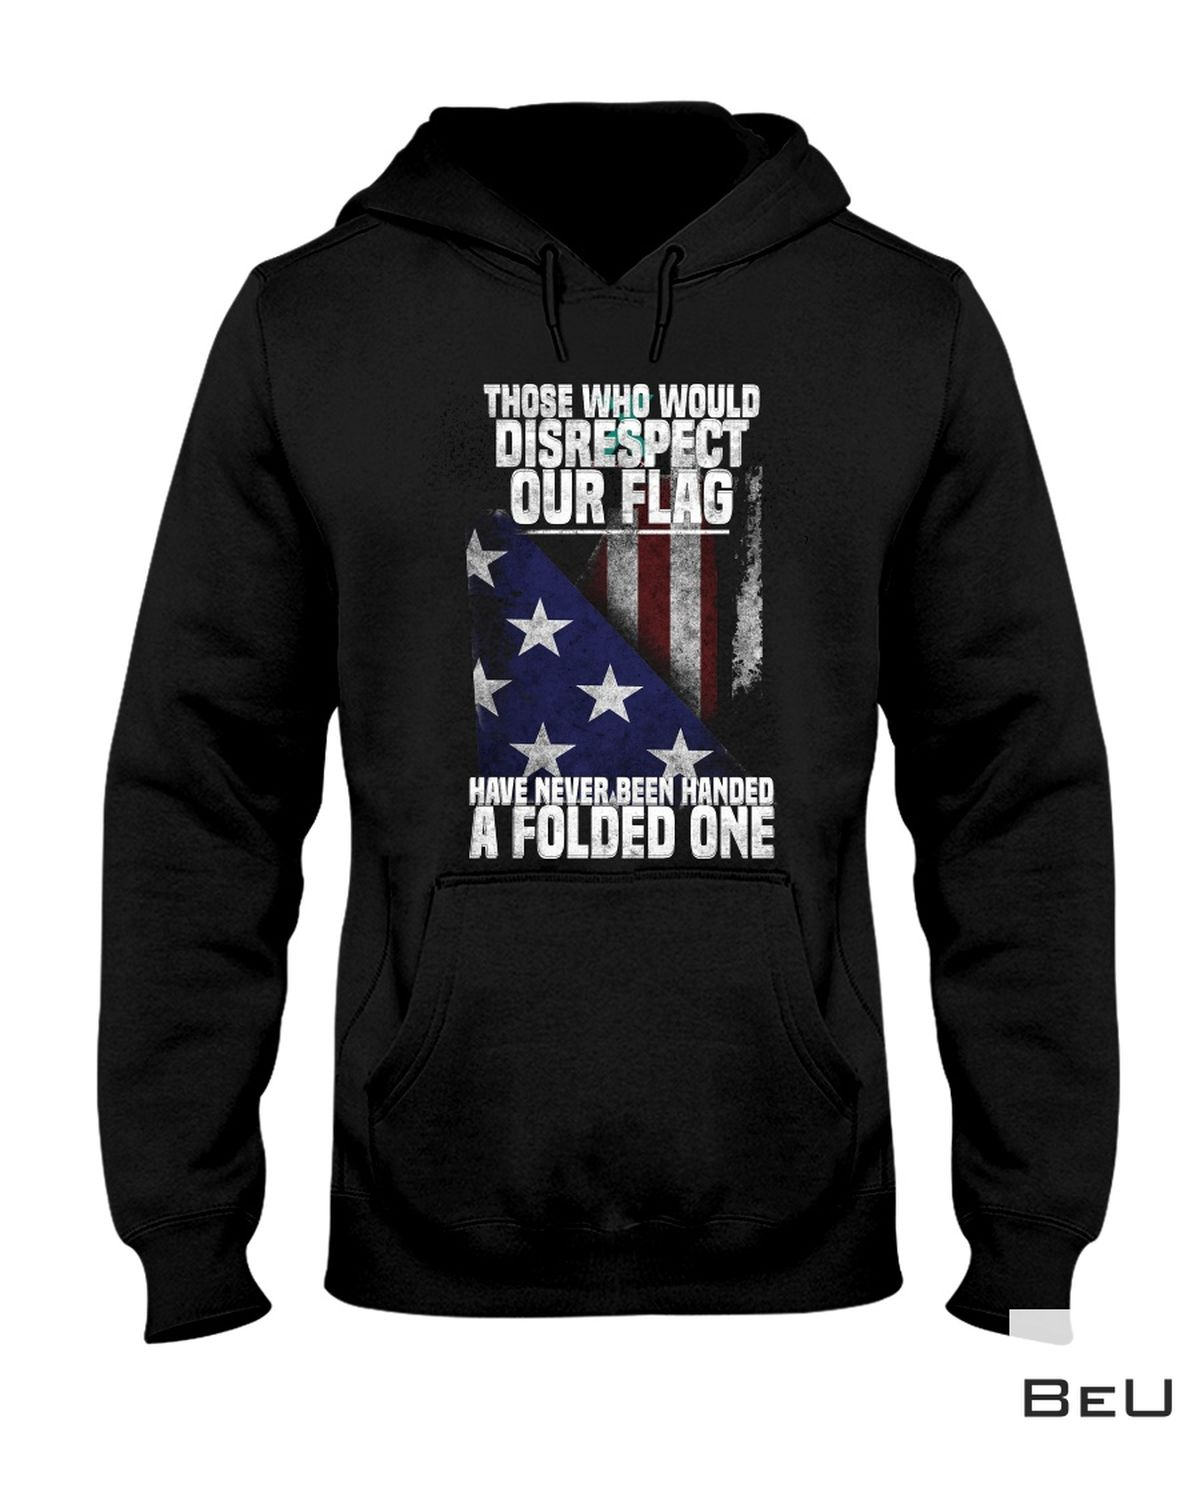 Best Gift Those Who Would Disrespect Our Flag Have Never Been Handed A Folded One Shirt